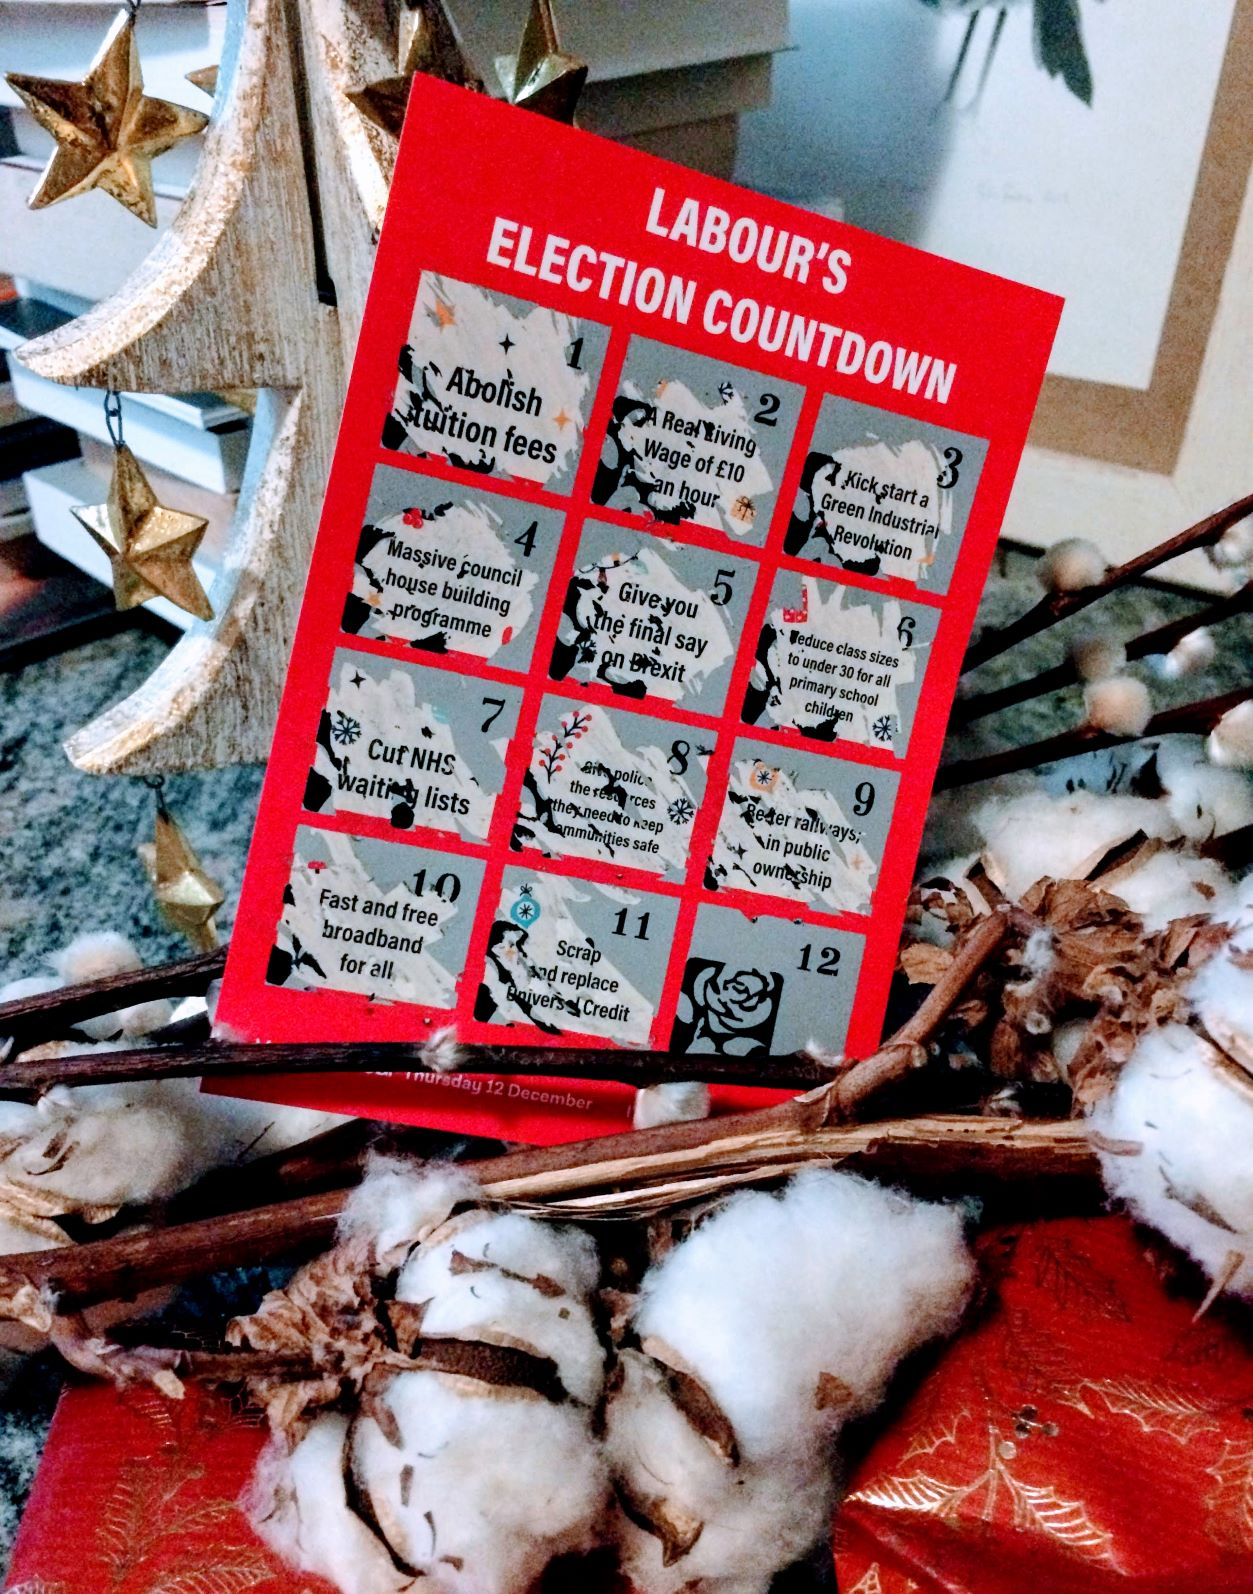 Image of a Labour Party scratchcard advent calendar, listing their election promises